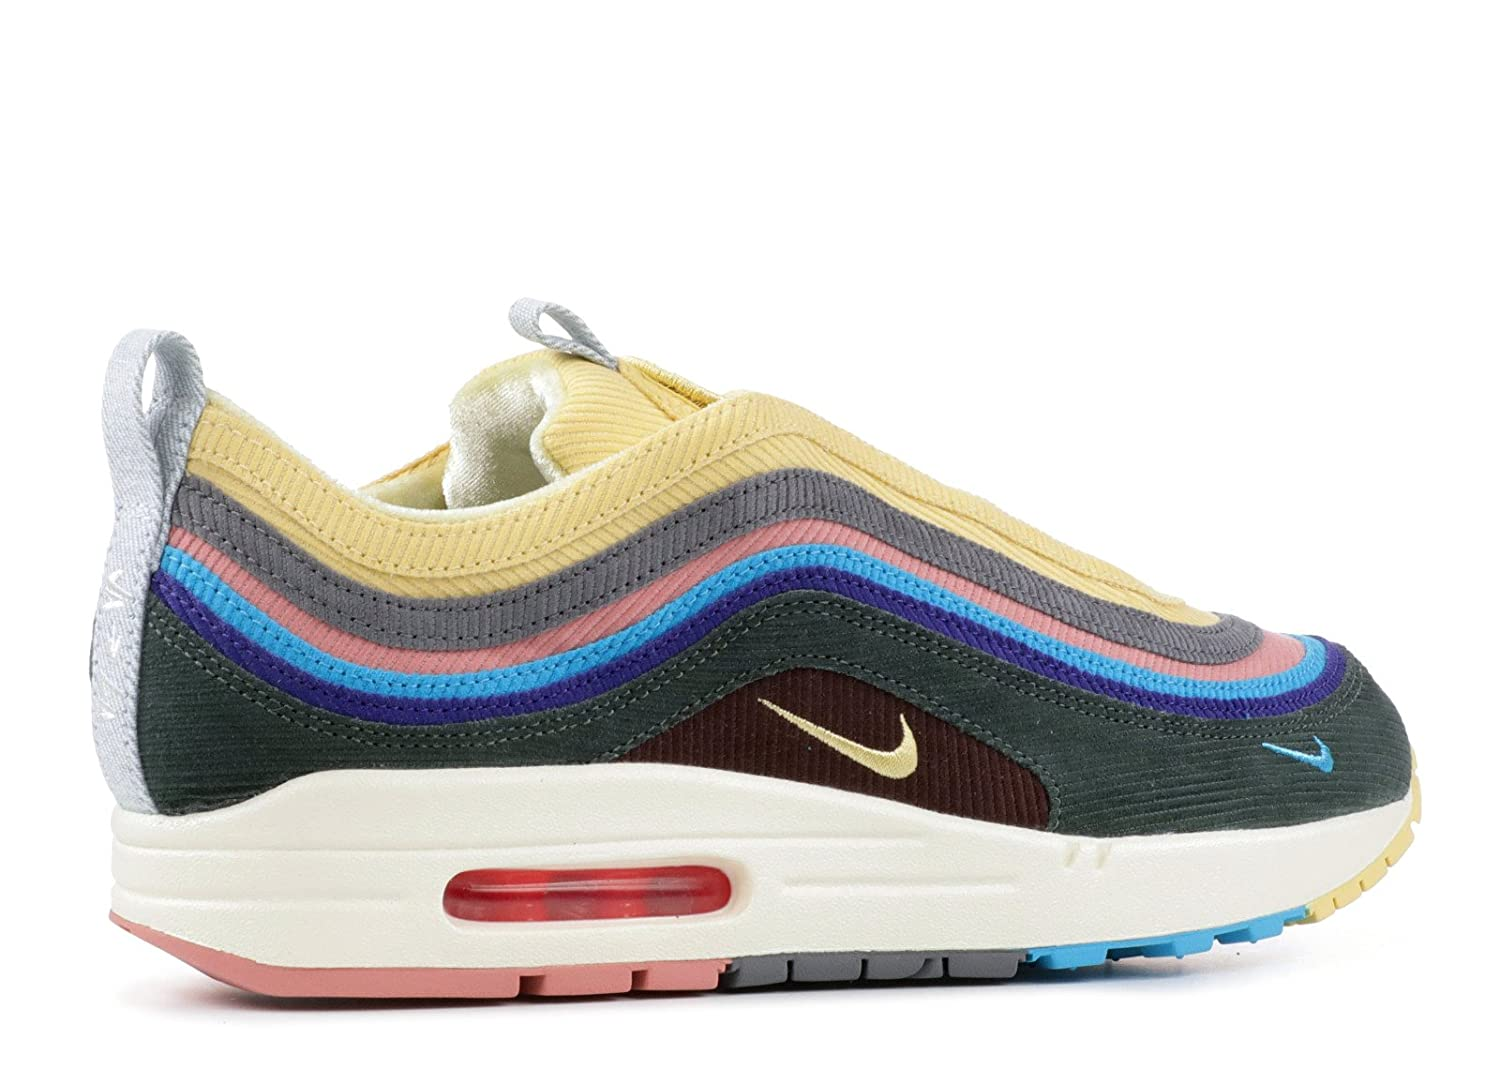 100% authentic c6dc9 fa5bc Nike AIR MAX 1/97 VF SW 'Sean Wotherspoon' - AJ4219-400: Amazon.co.uk: Shoes  & Bags